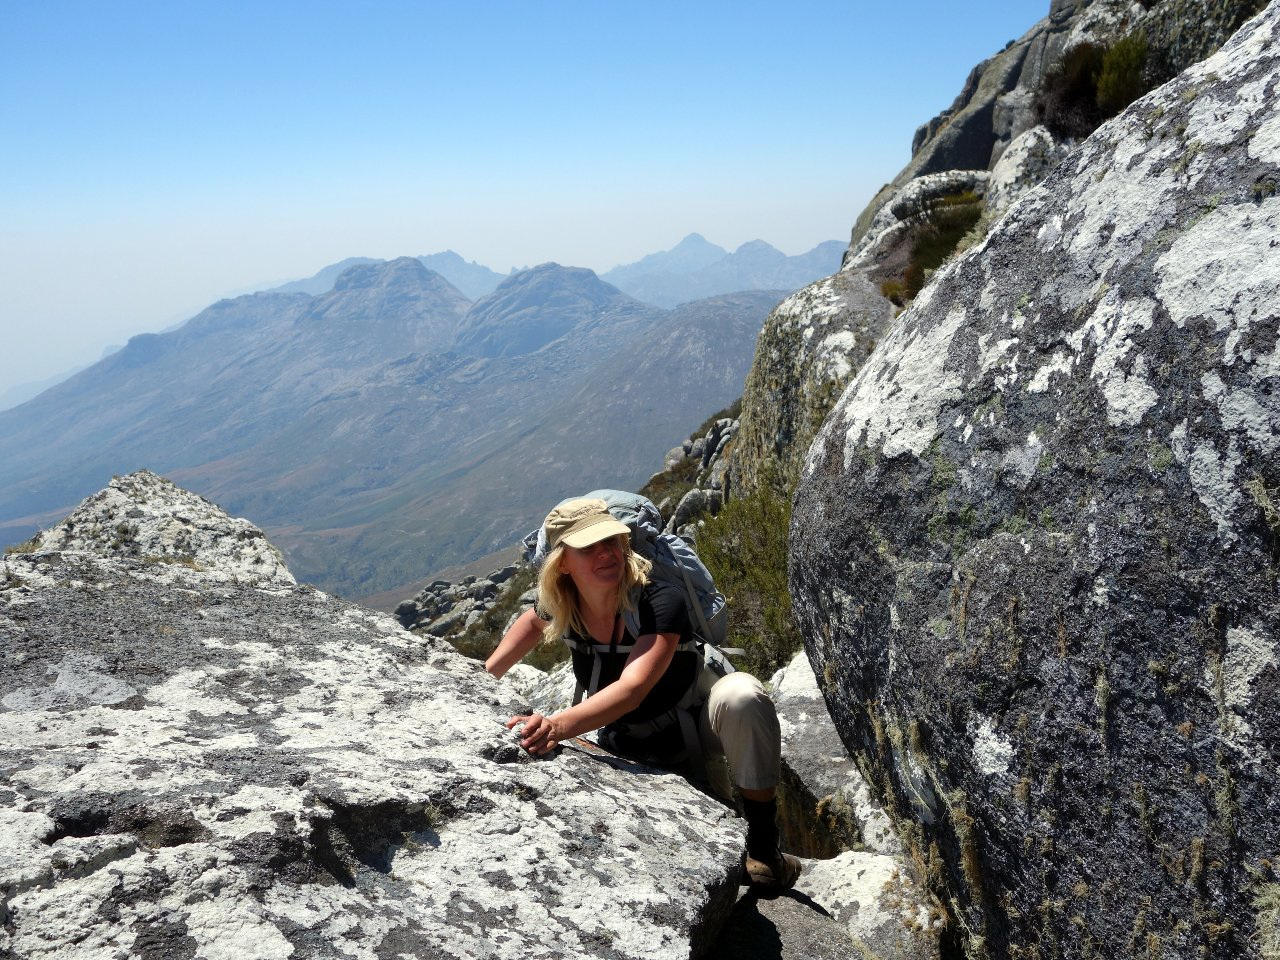 Climbing Sapitwa Peak Mulanje the highest peak in Malawi Mark 1280x960